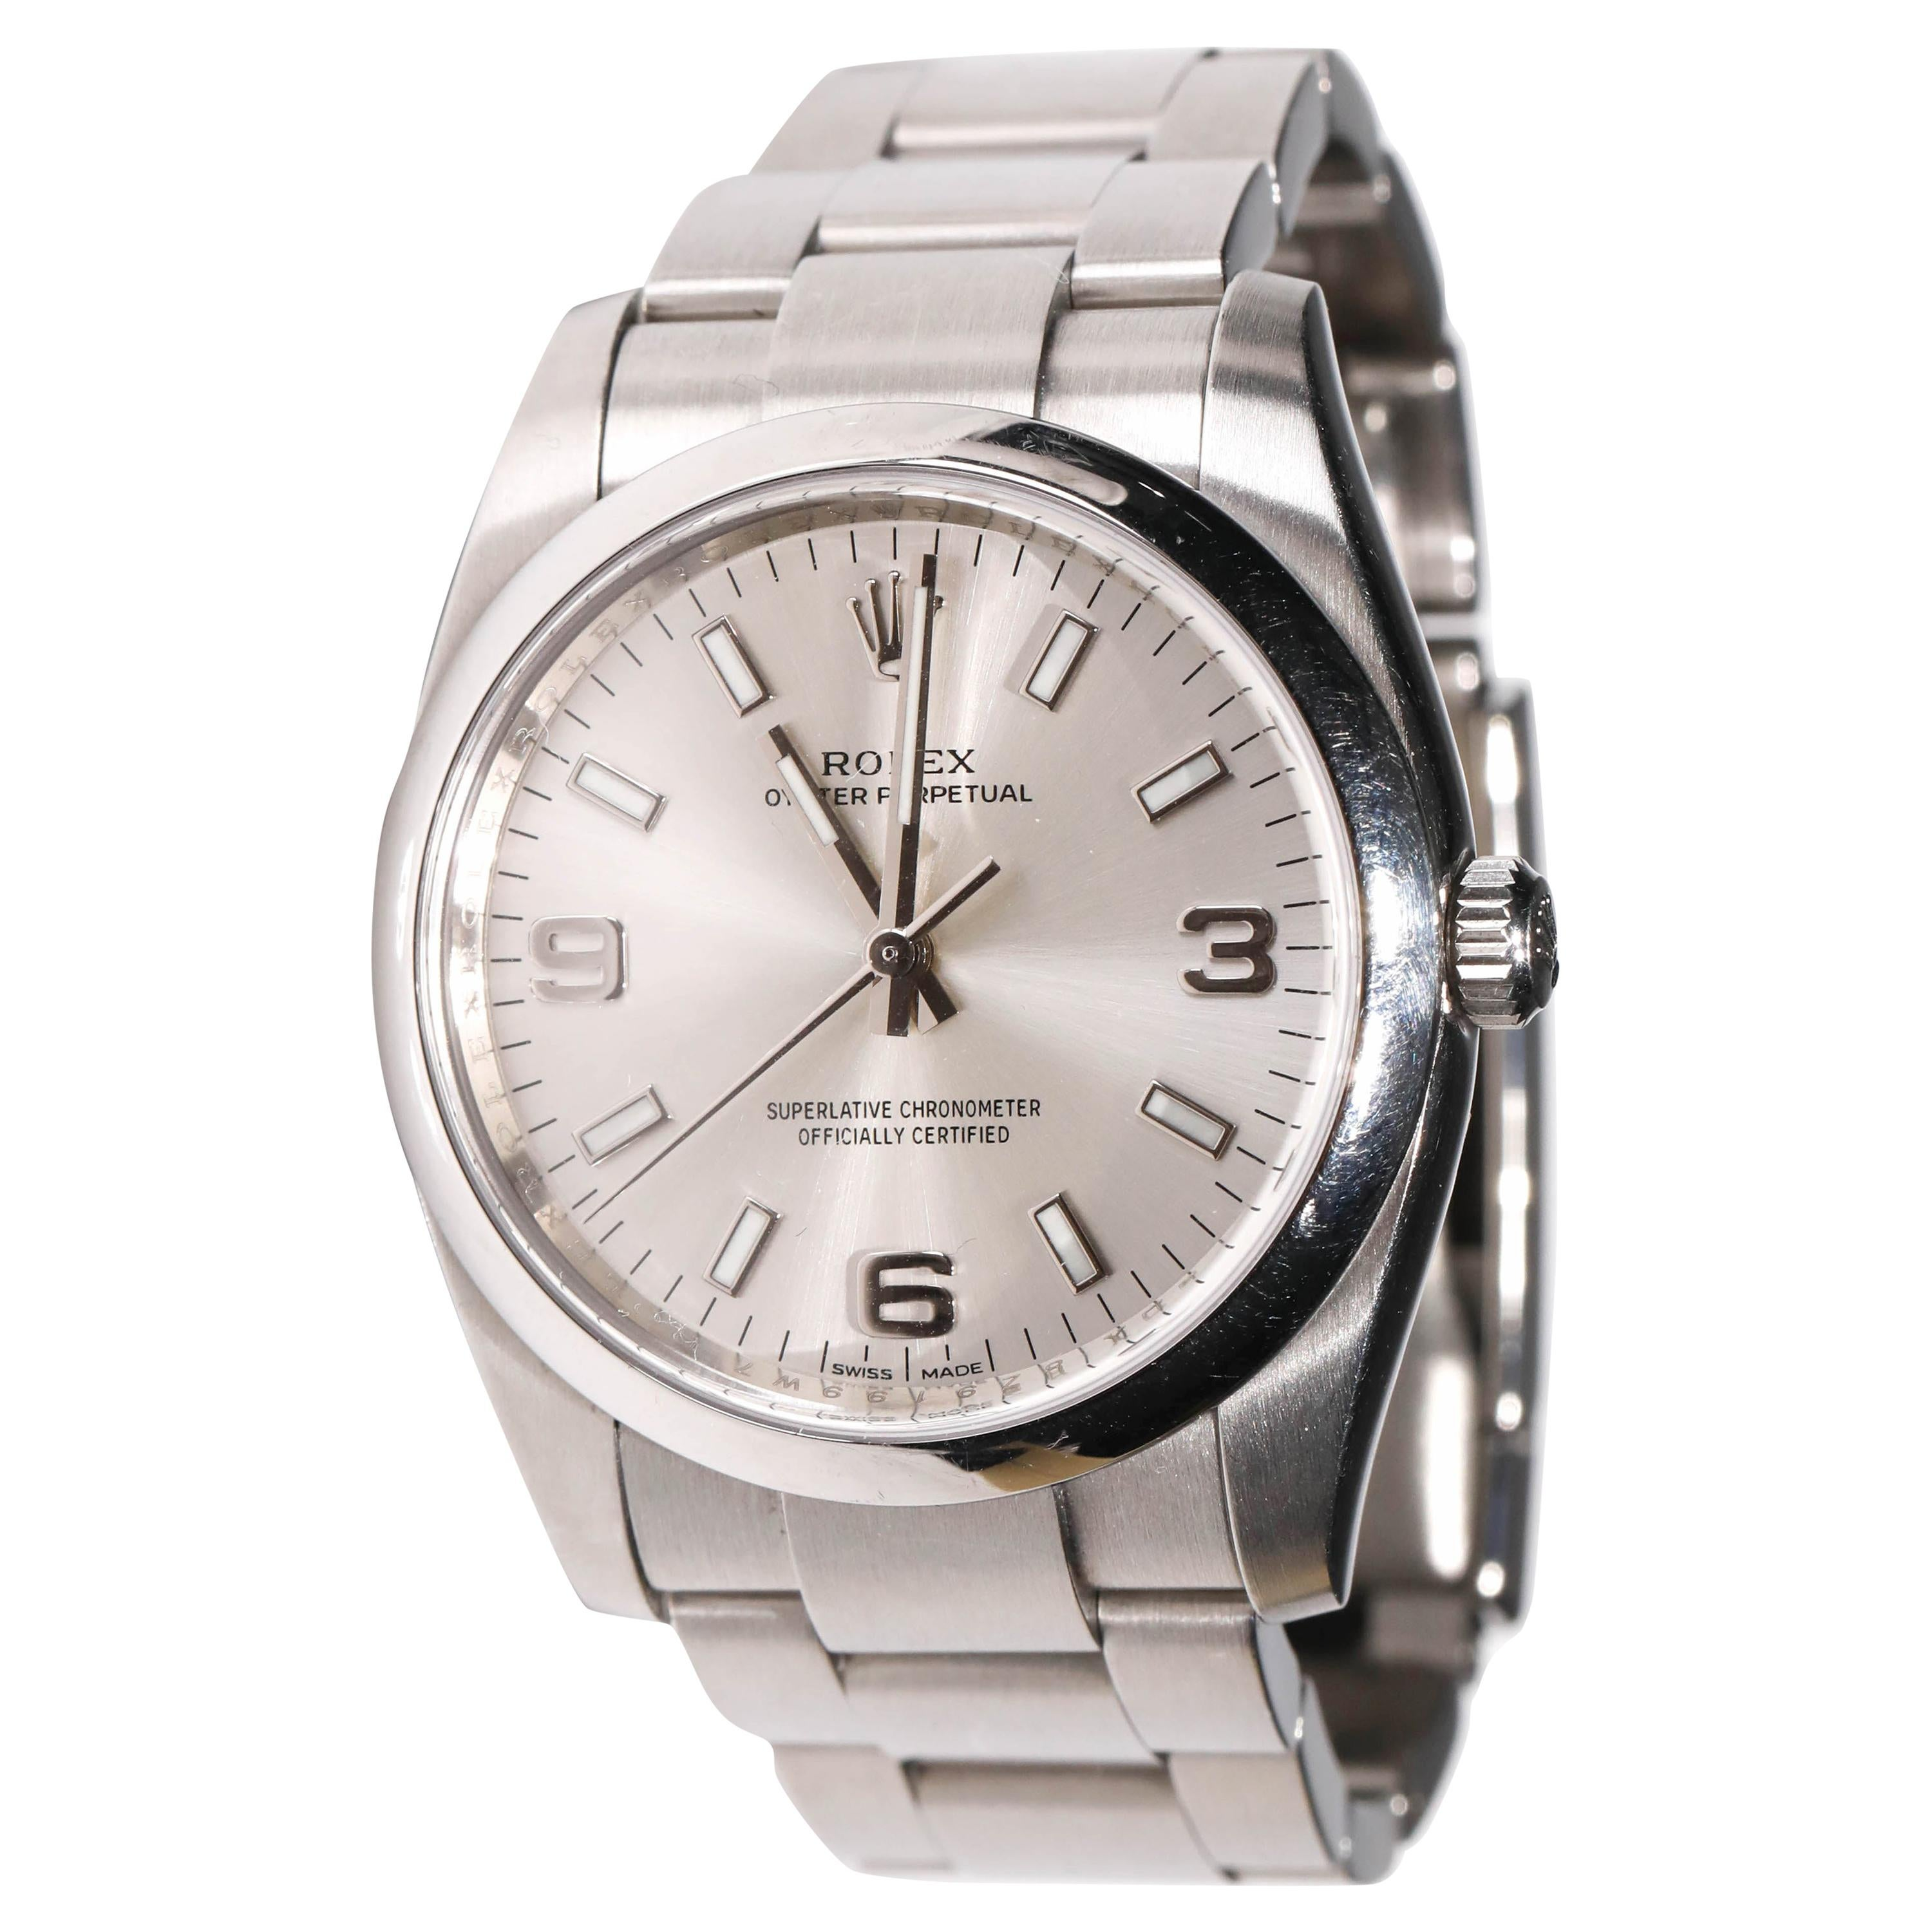 Rolex Men's Oyster Perpetual Stainless Steel Automatic Grey Slate Dial Watch